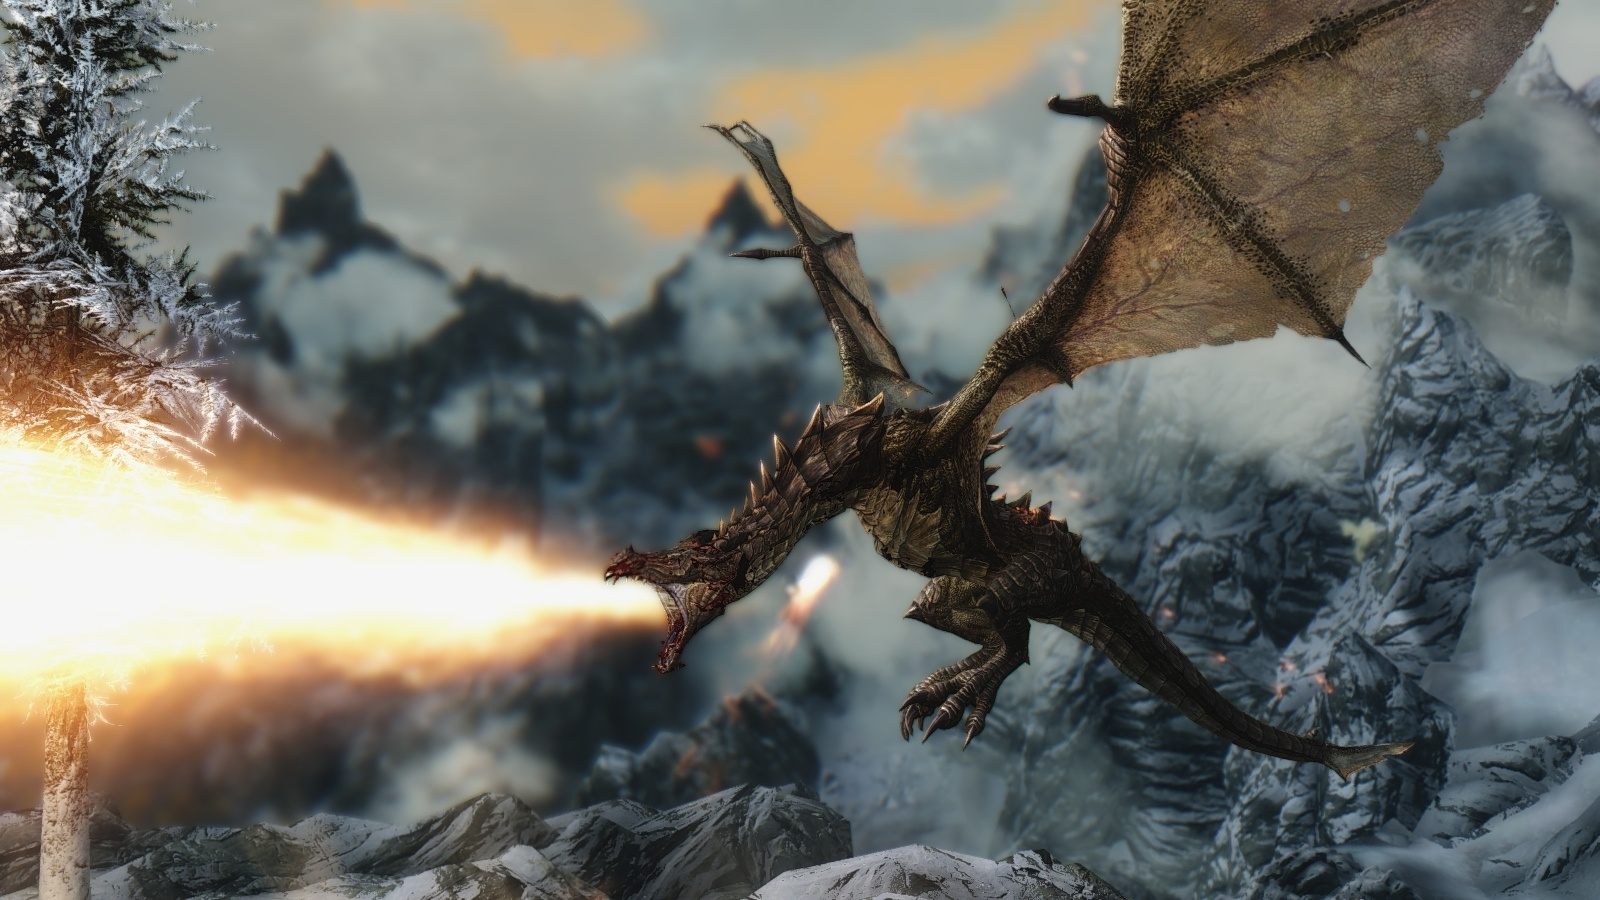 The Elder Scrolls V Skyrim – Bugs and Lugs fixes